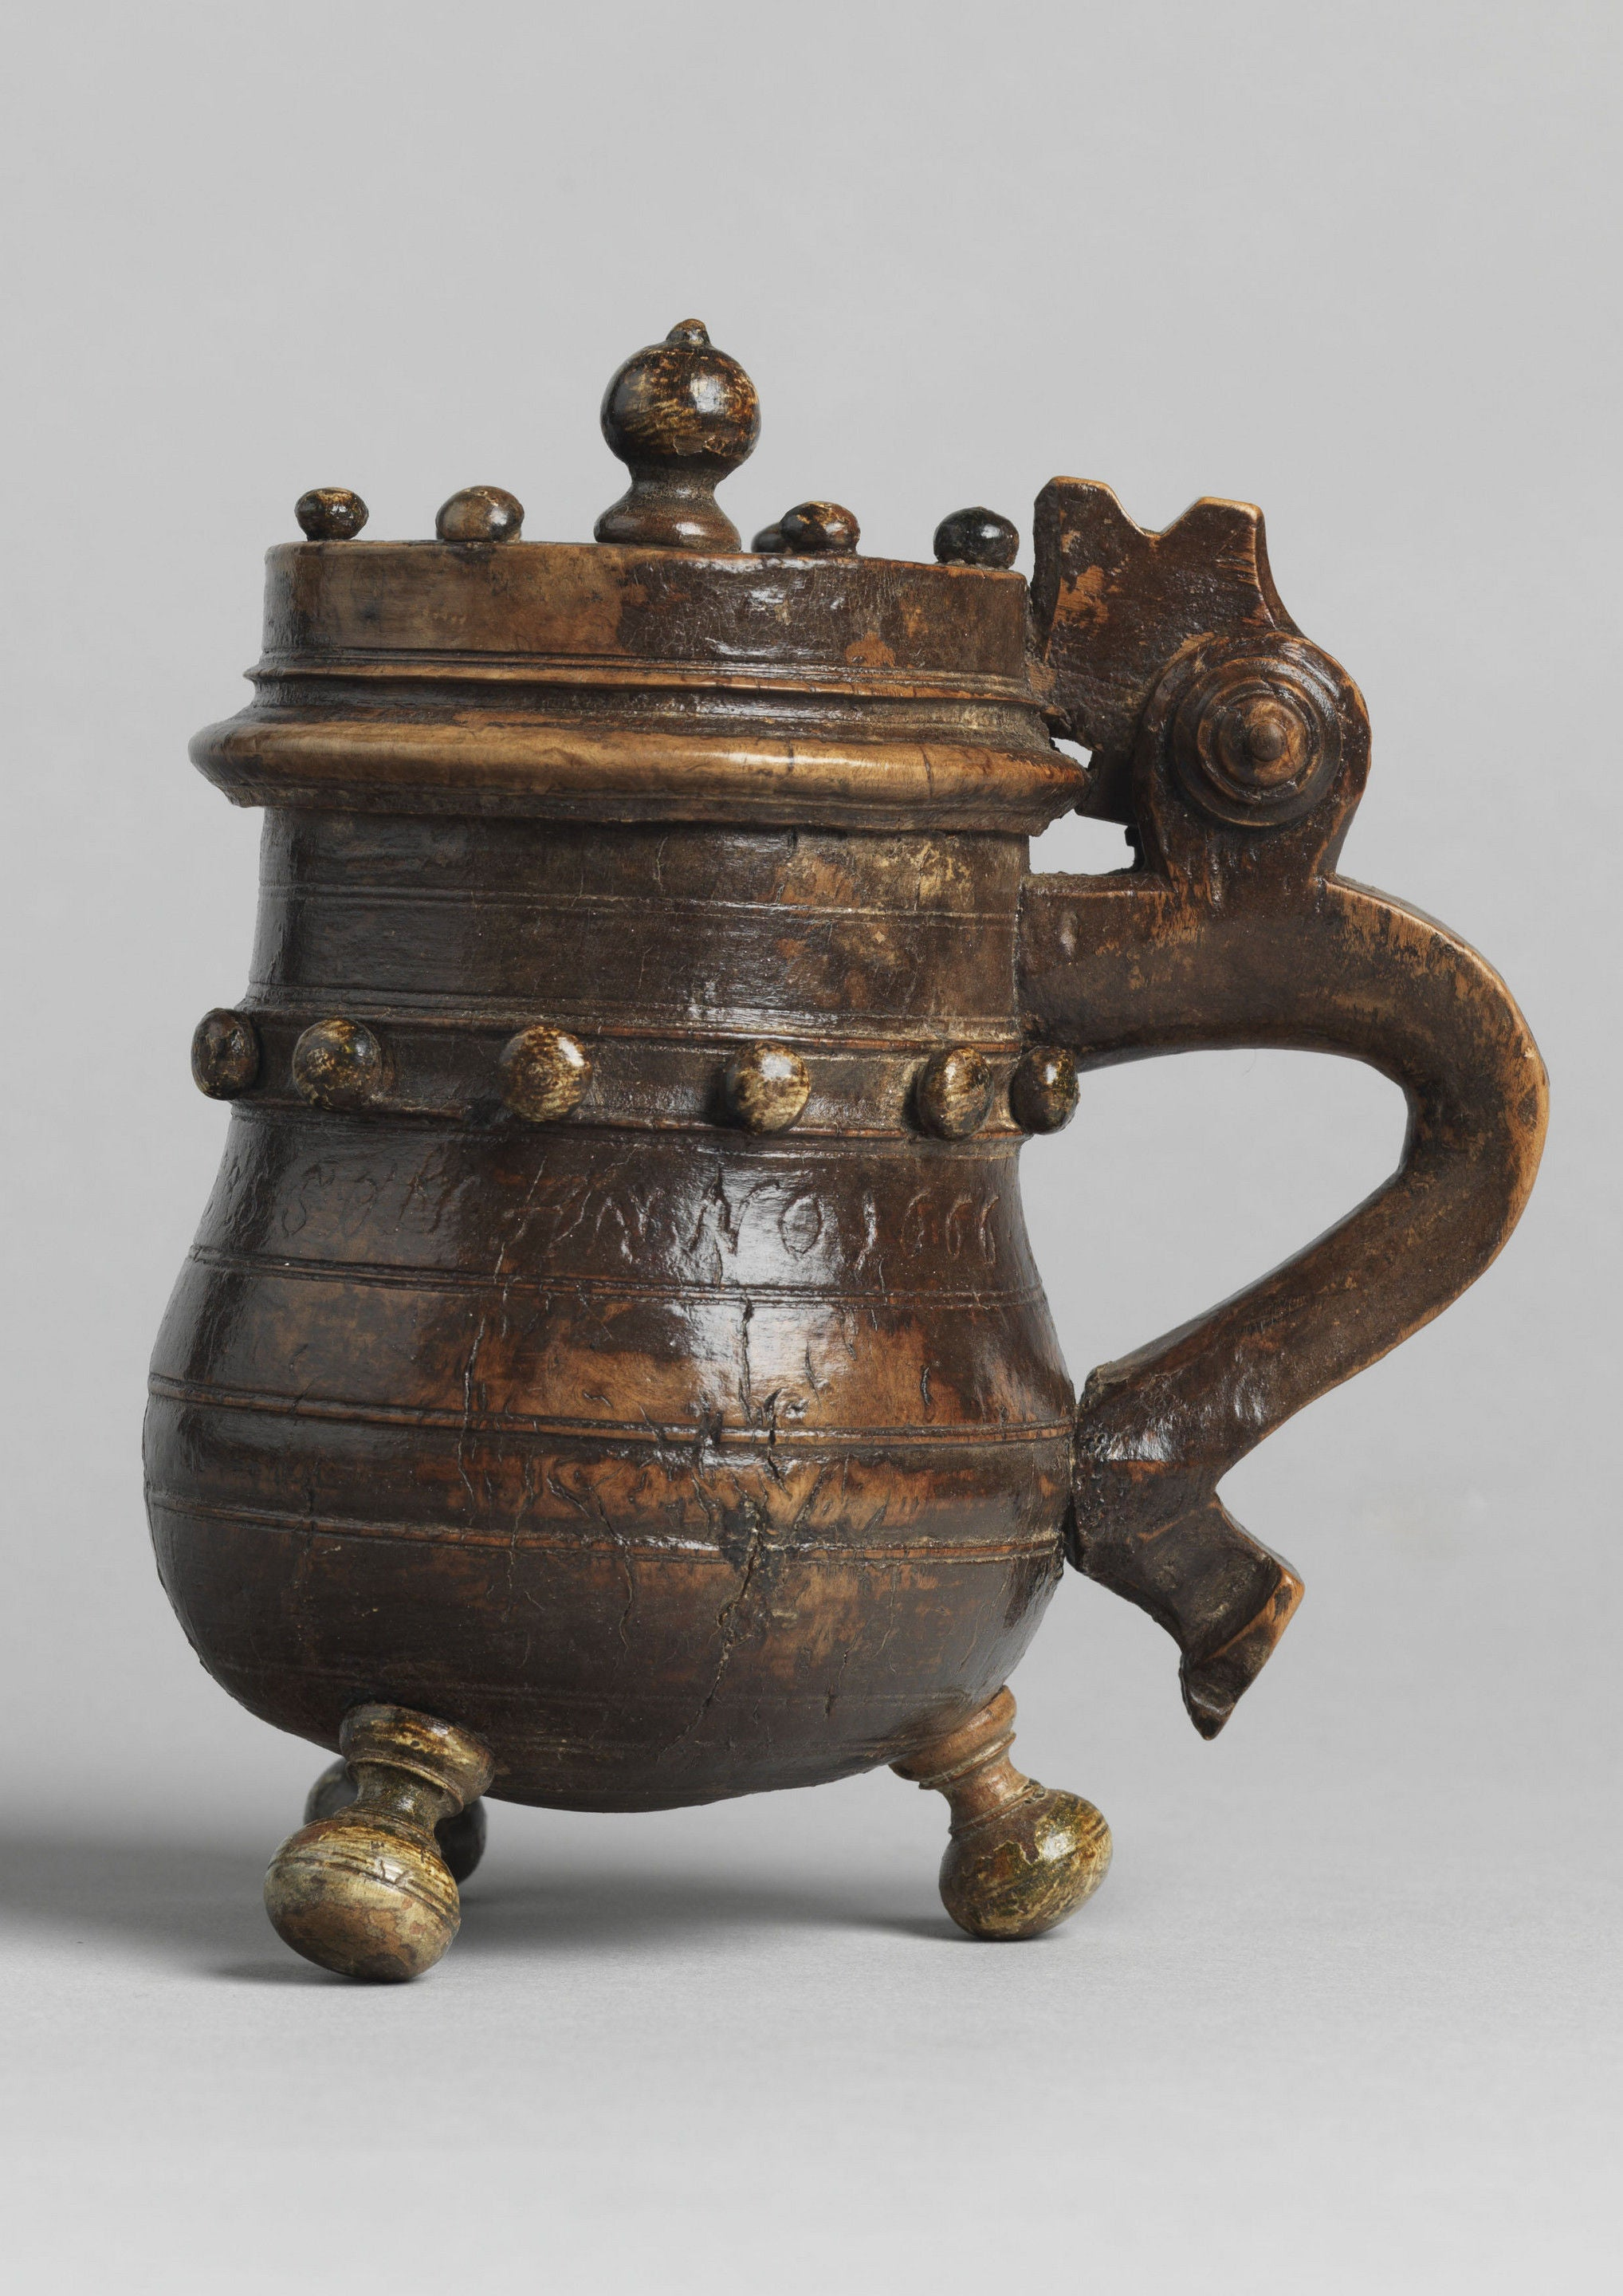 Rare Early Ceremonial Tankard of Diminutive Proportions